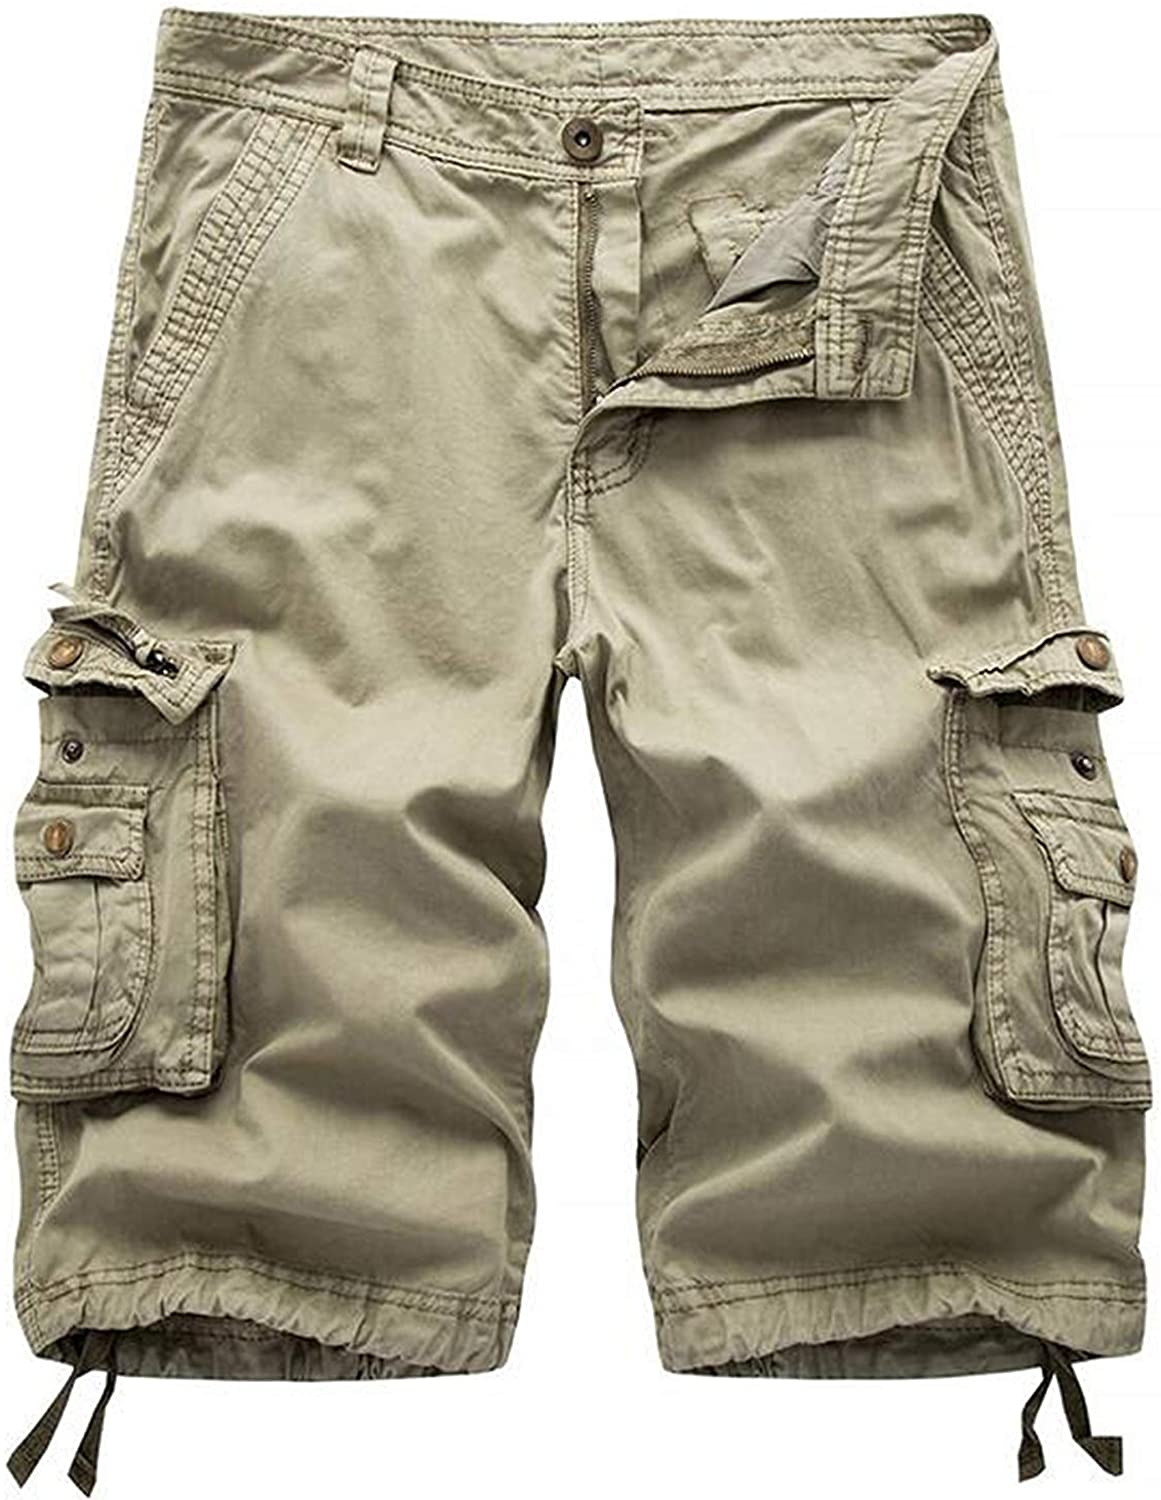 STR Snail Camouflage Cargo Shorts for Men Army Shorts